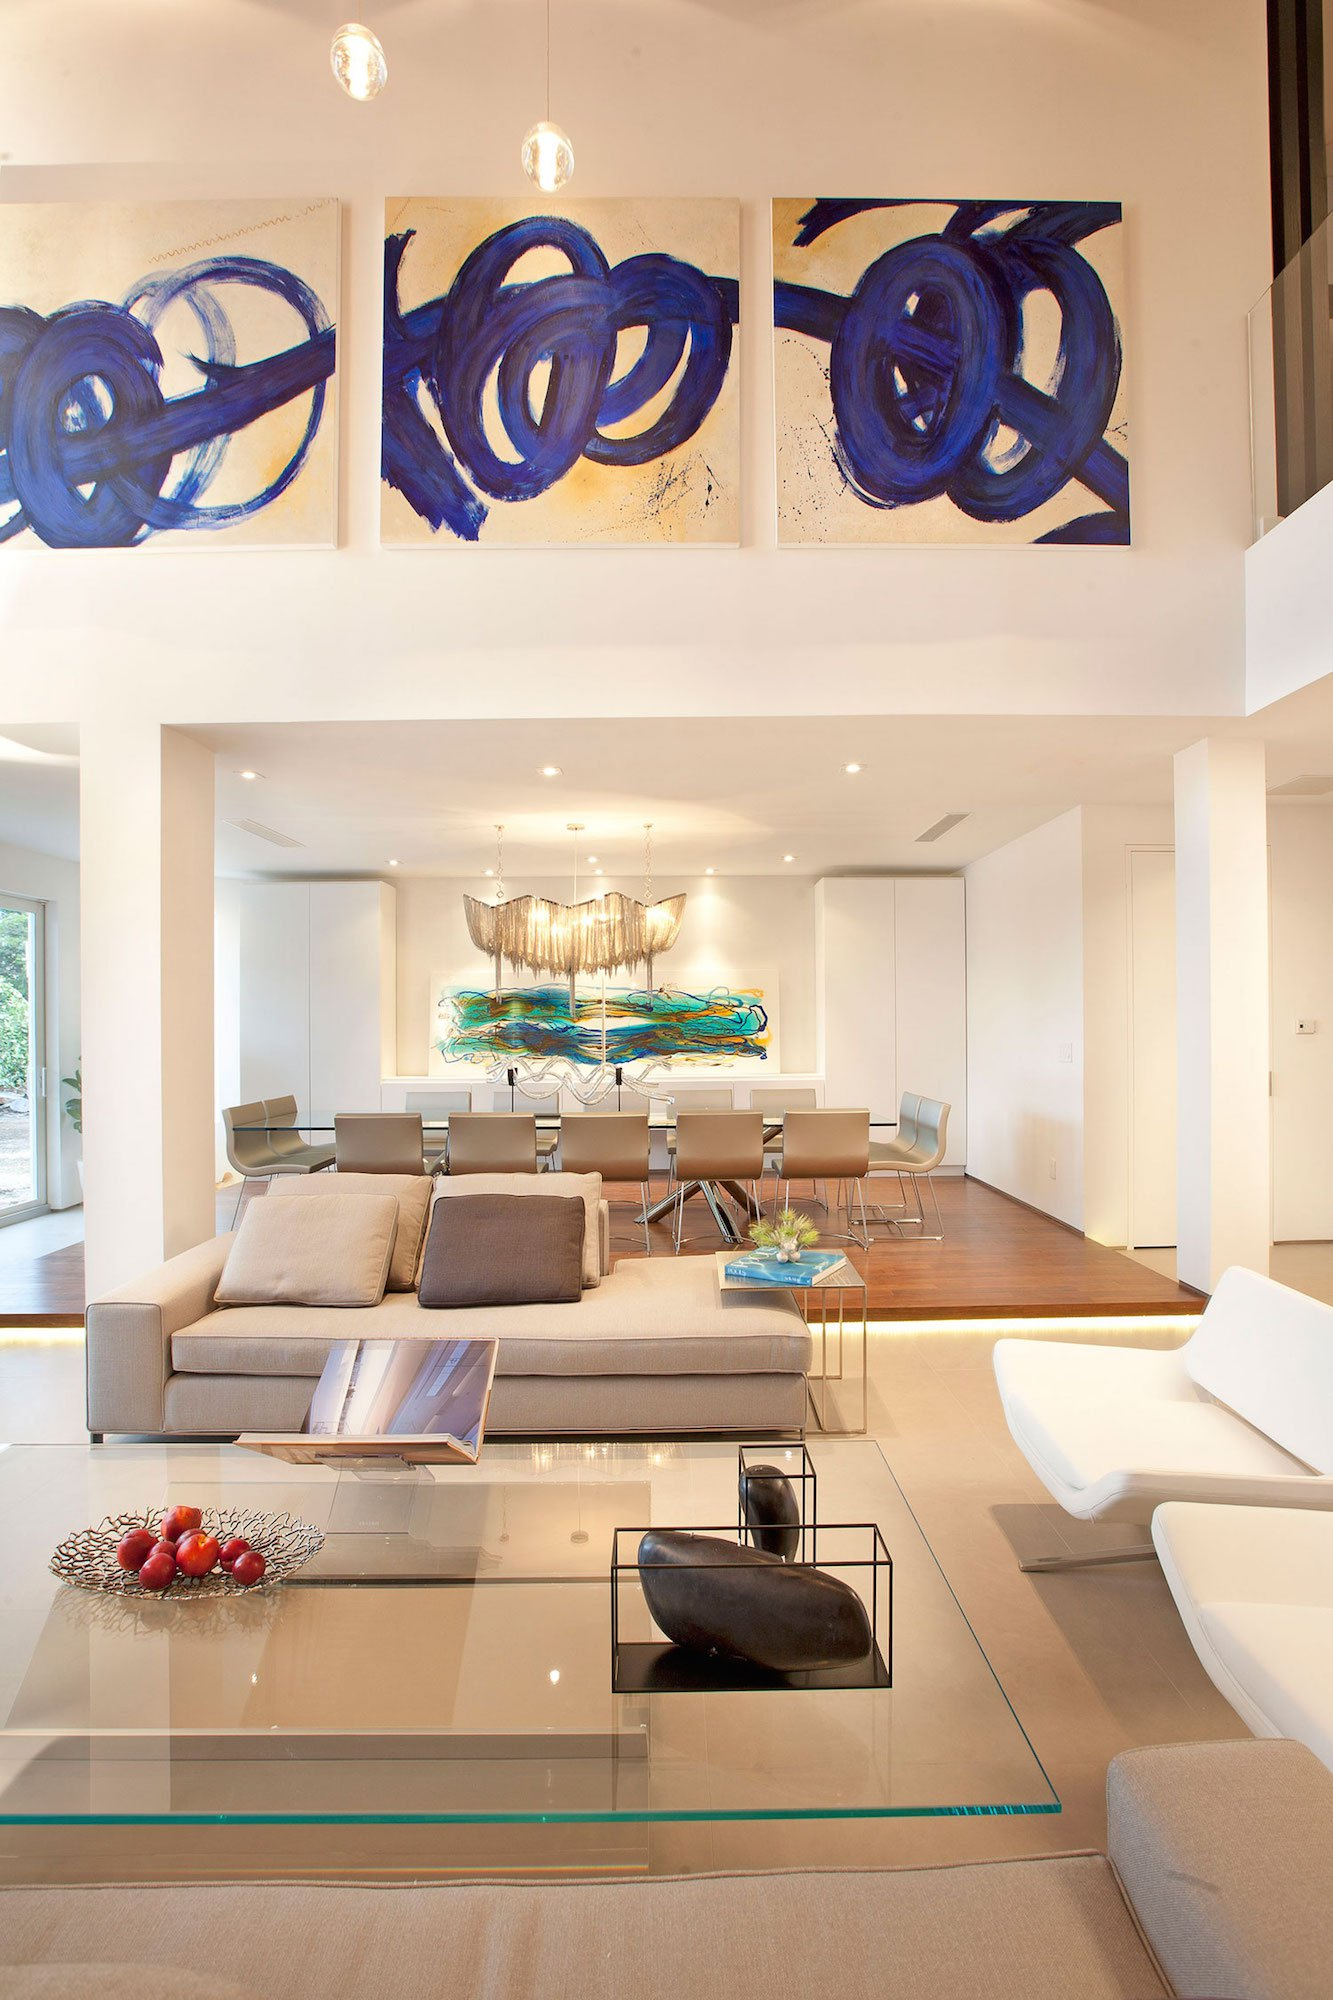 miami modern home by dkor interiors caandesign miami condo home design ideas pictures remodel and decor